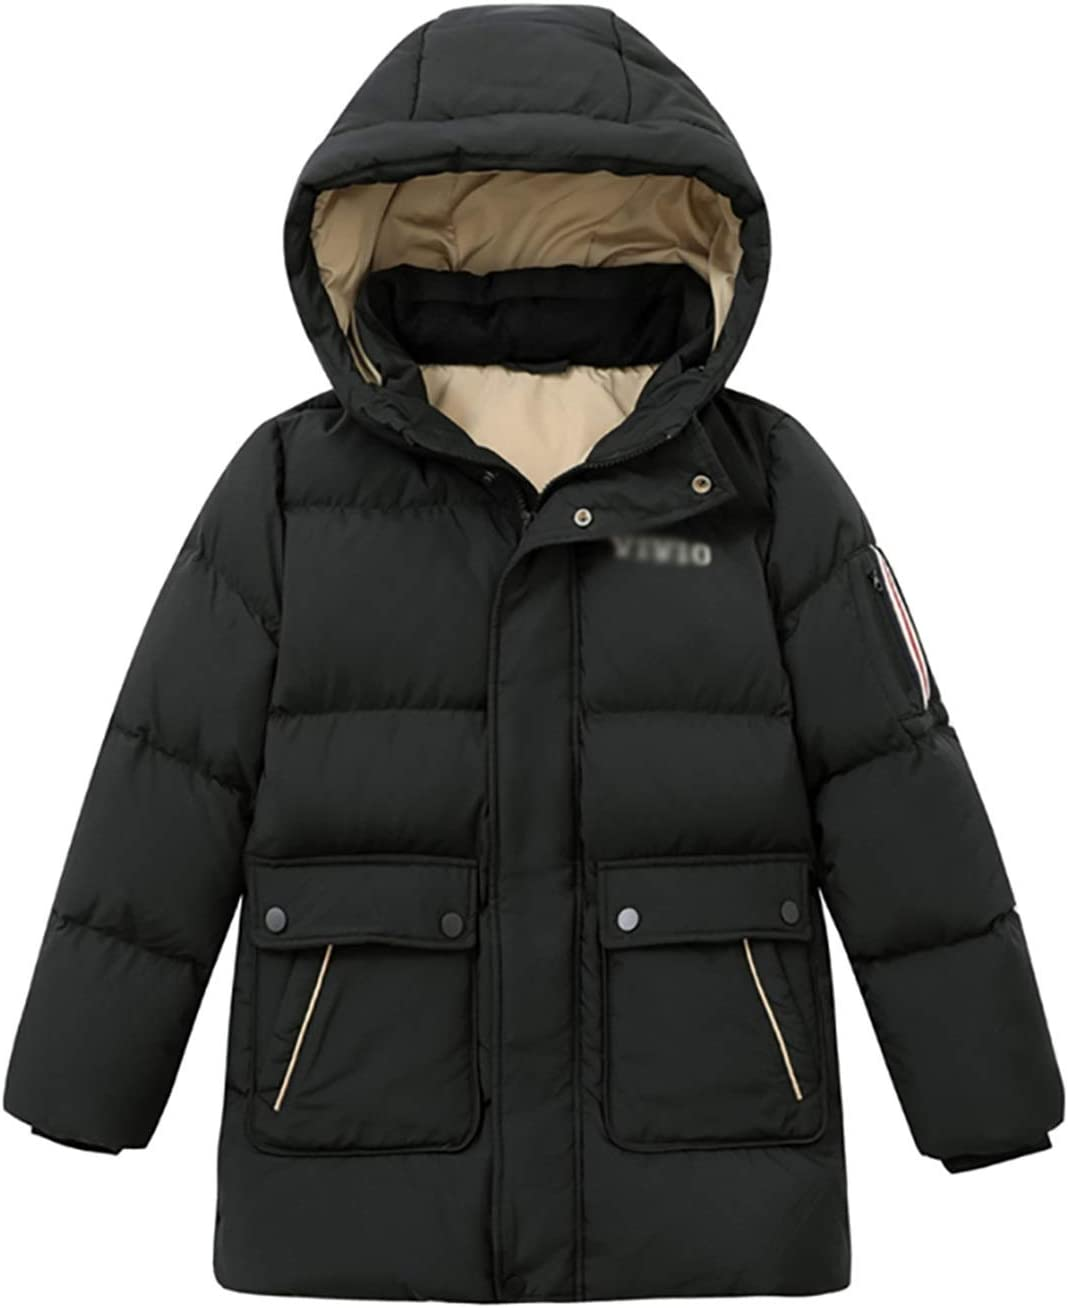 Warm Clothes Parkas Kids Puffer Jacket with Hood Quilt Lined Jacket Coat Full Zip Heavyweight Long Coats Universal (Color : Yellow|,| Size : XX-Large)